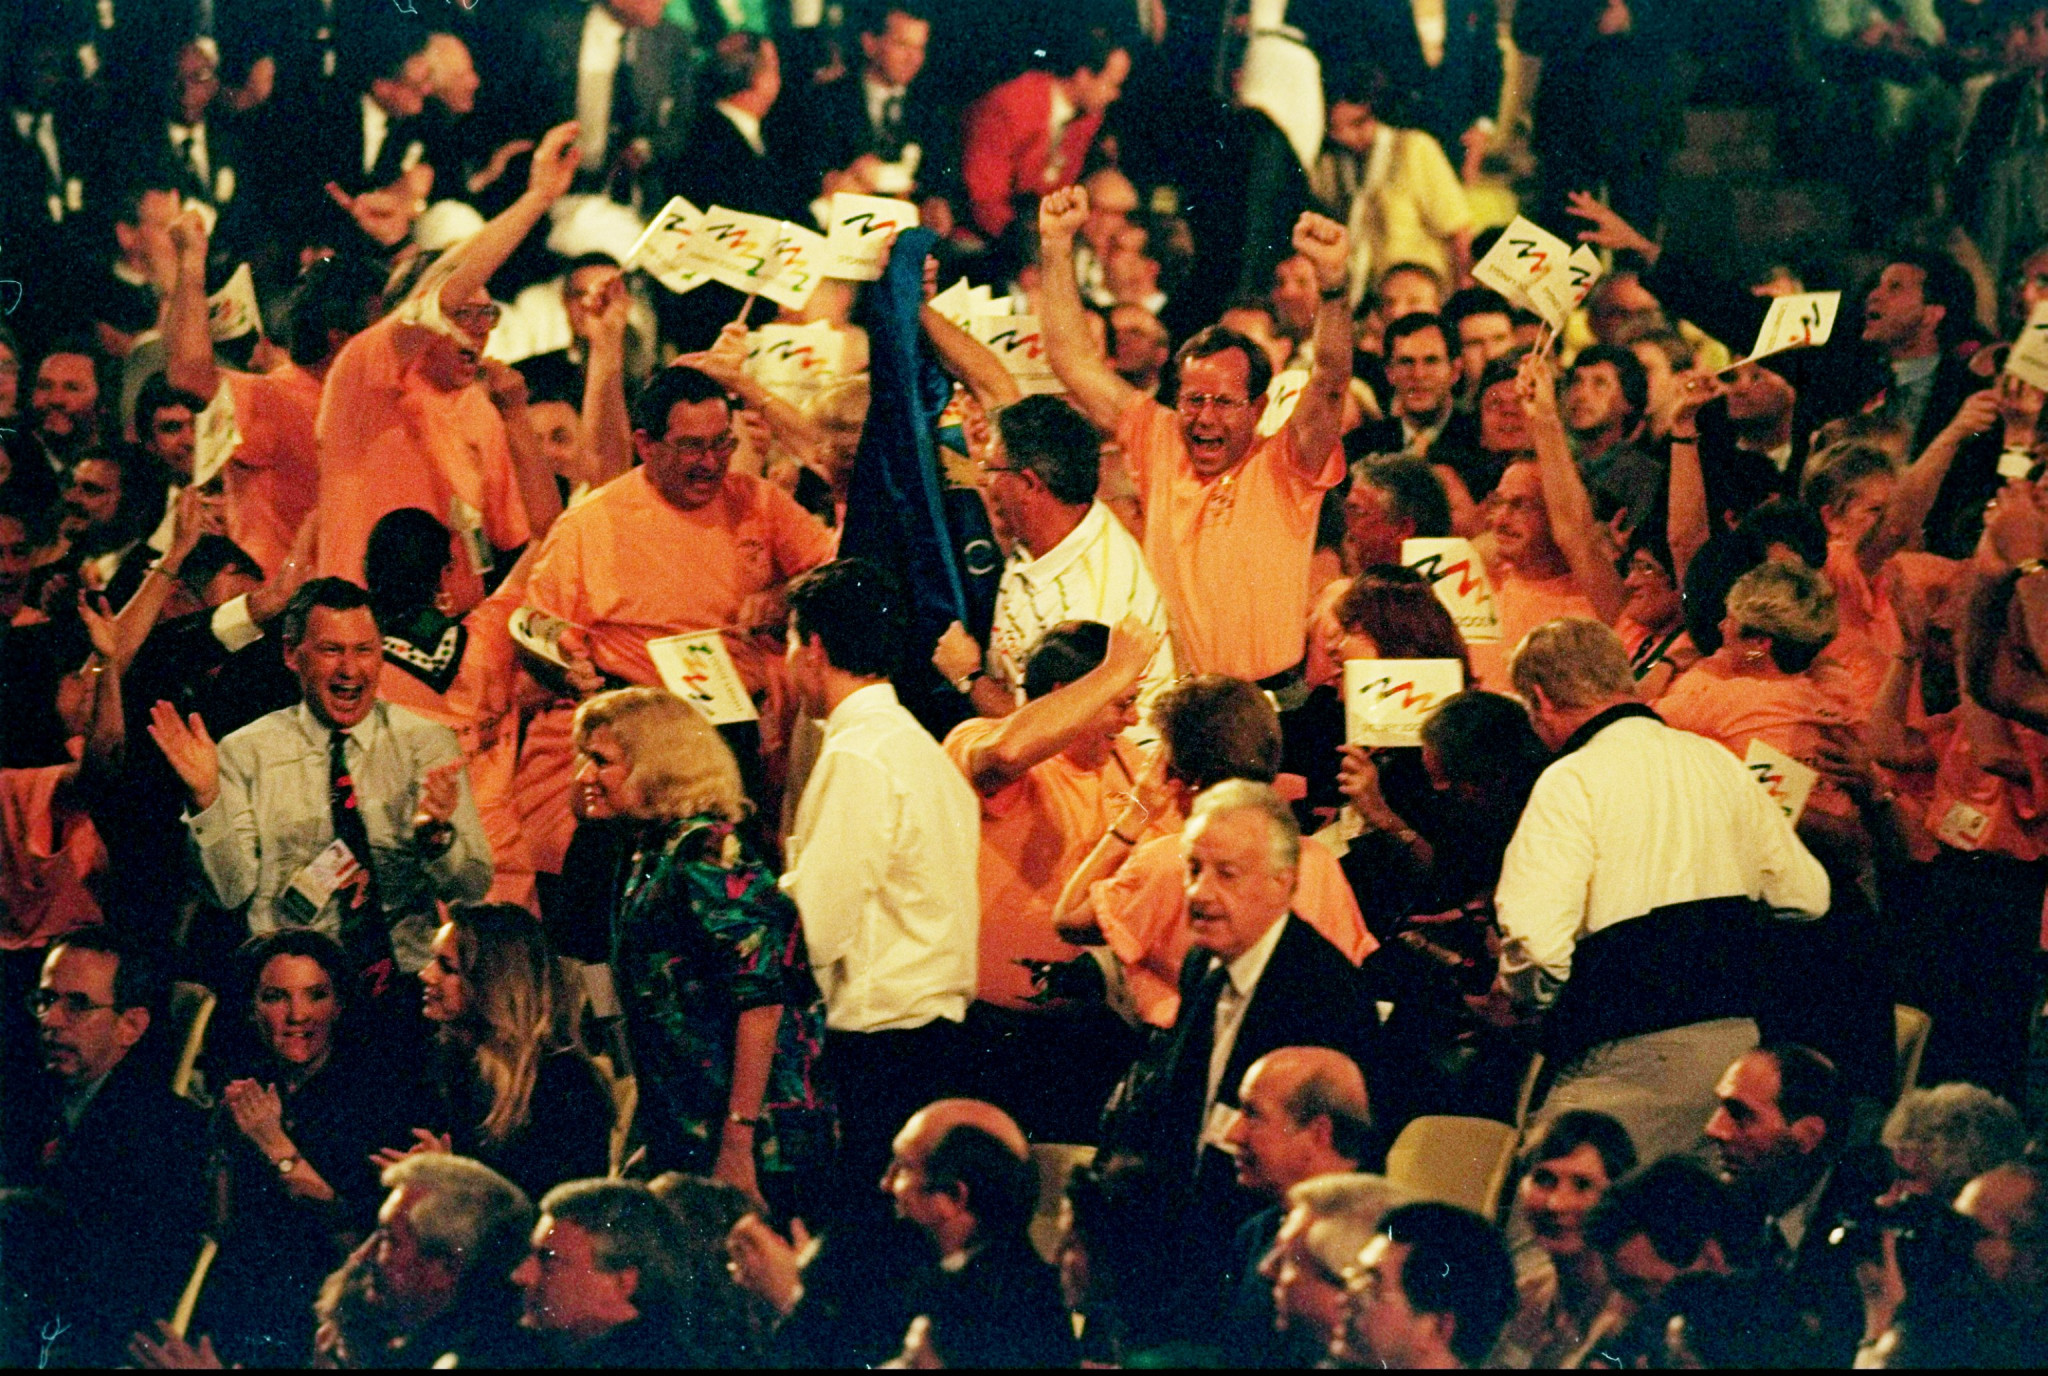 Delegates celebrate Sydney being awarded the 2000 Olympics and Paralympics. For the 2032 Games, Brisbane will not be embroiled in the same kind of bid race ©Getty Images